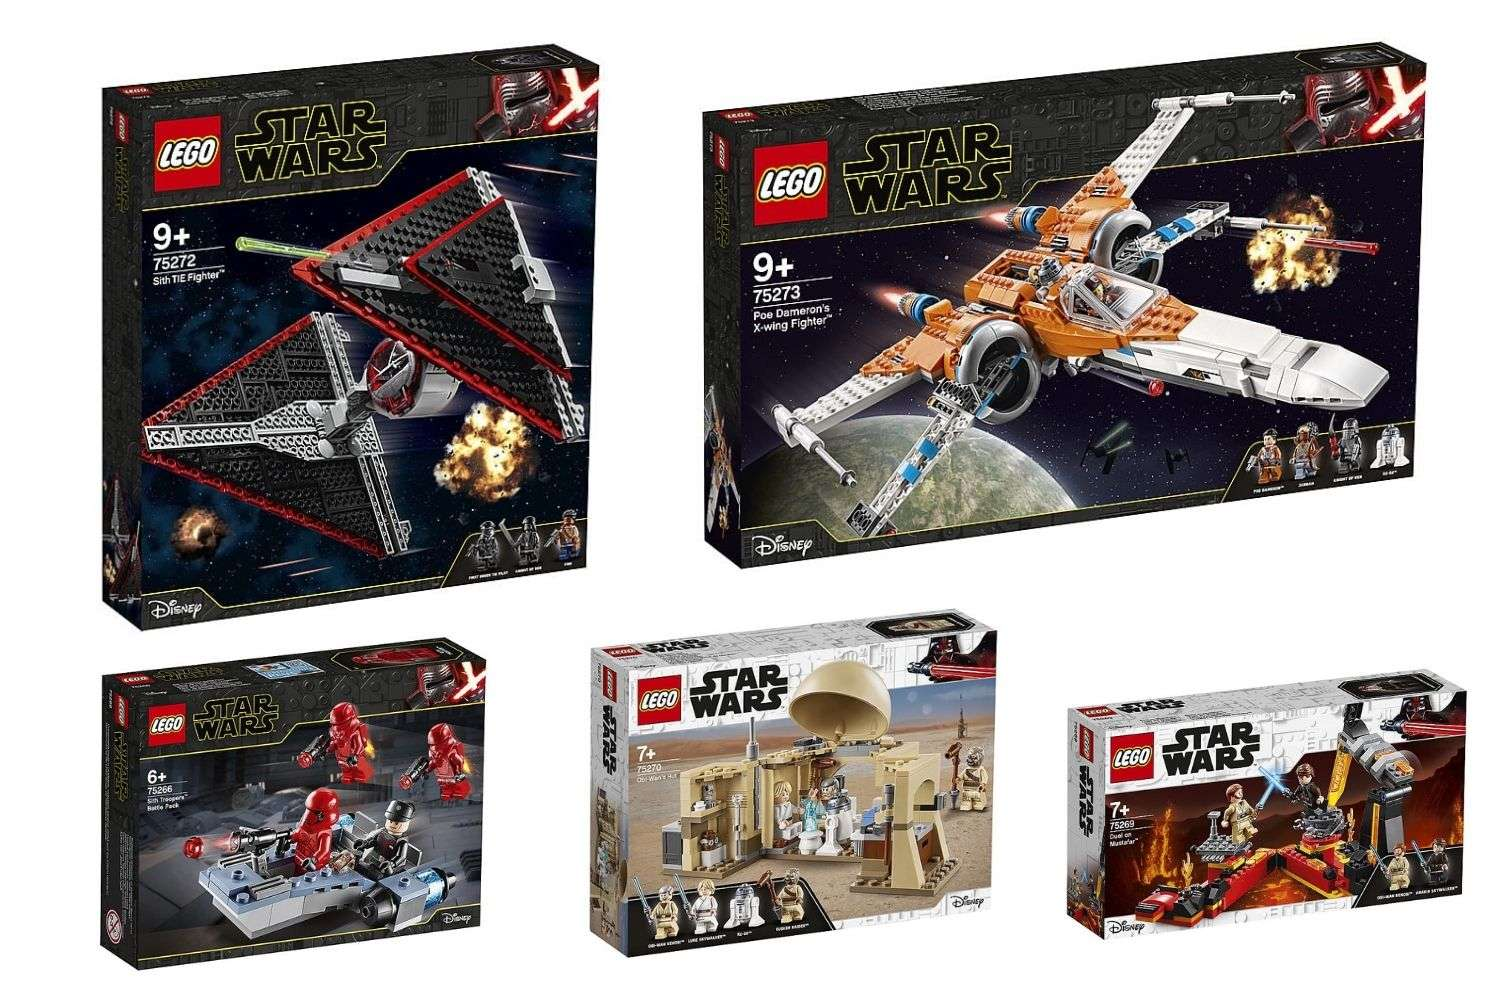 LEGO Star Wars January 2020 sets